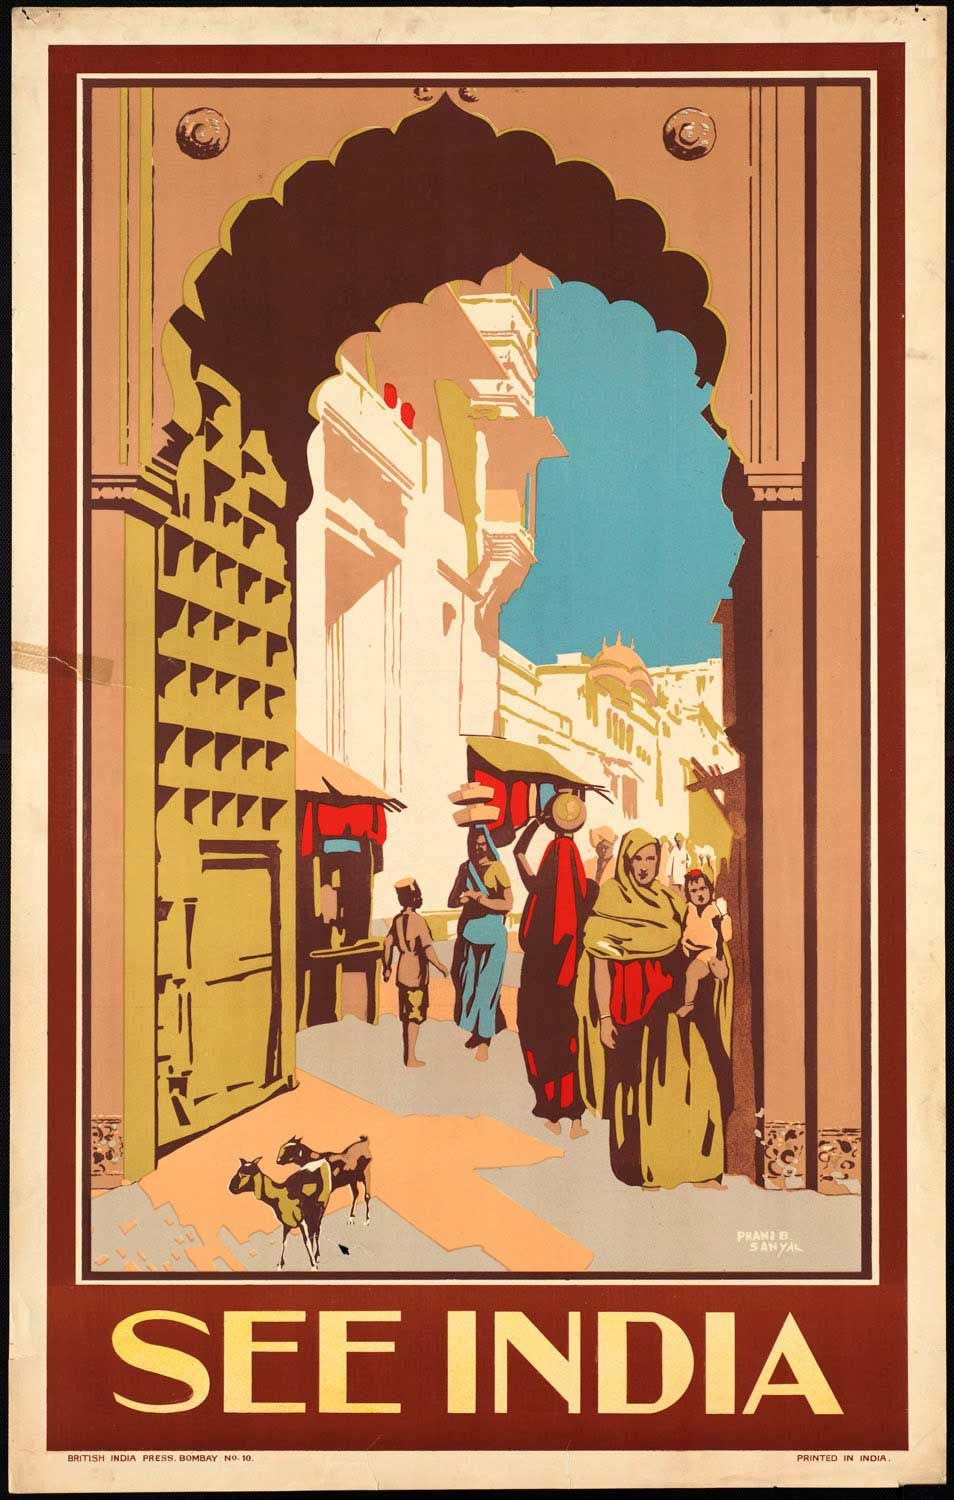 Vintage Poster Travel ad India by British India Press